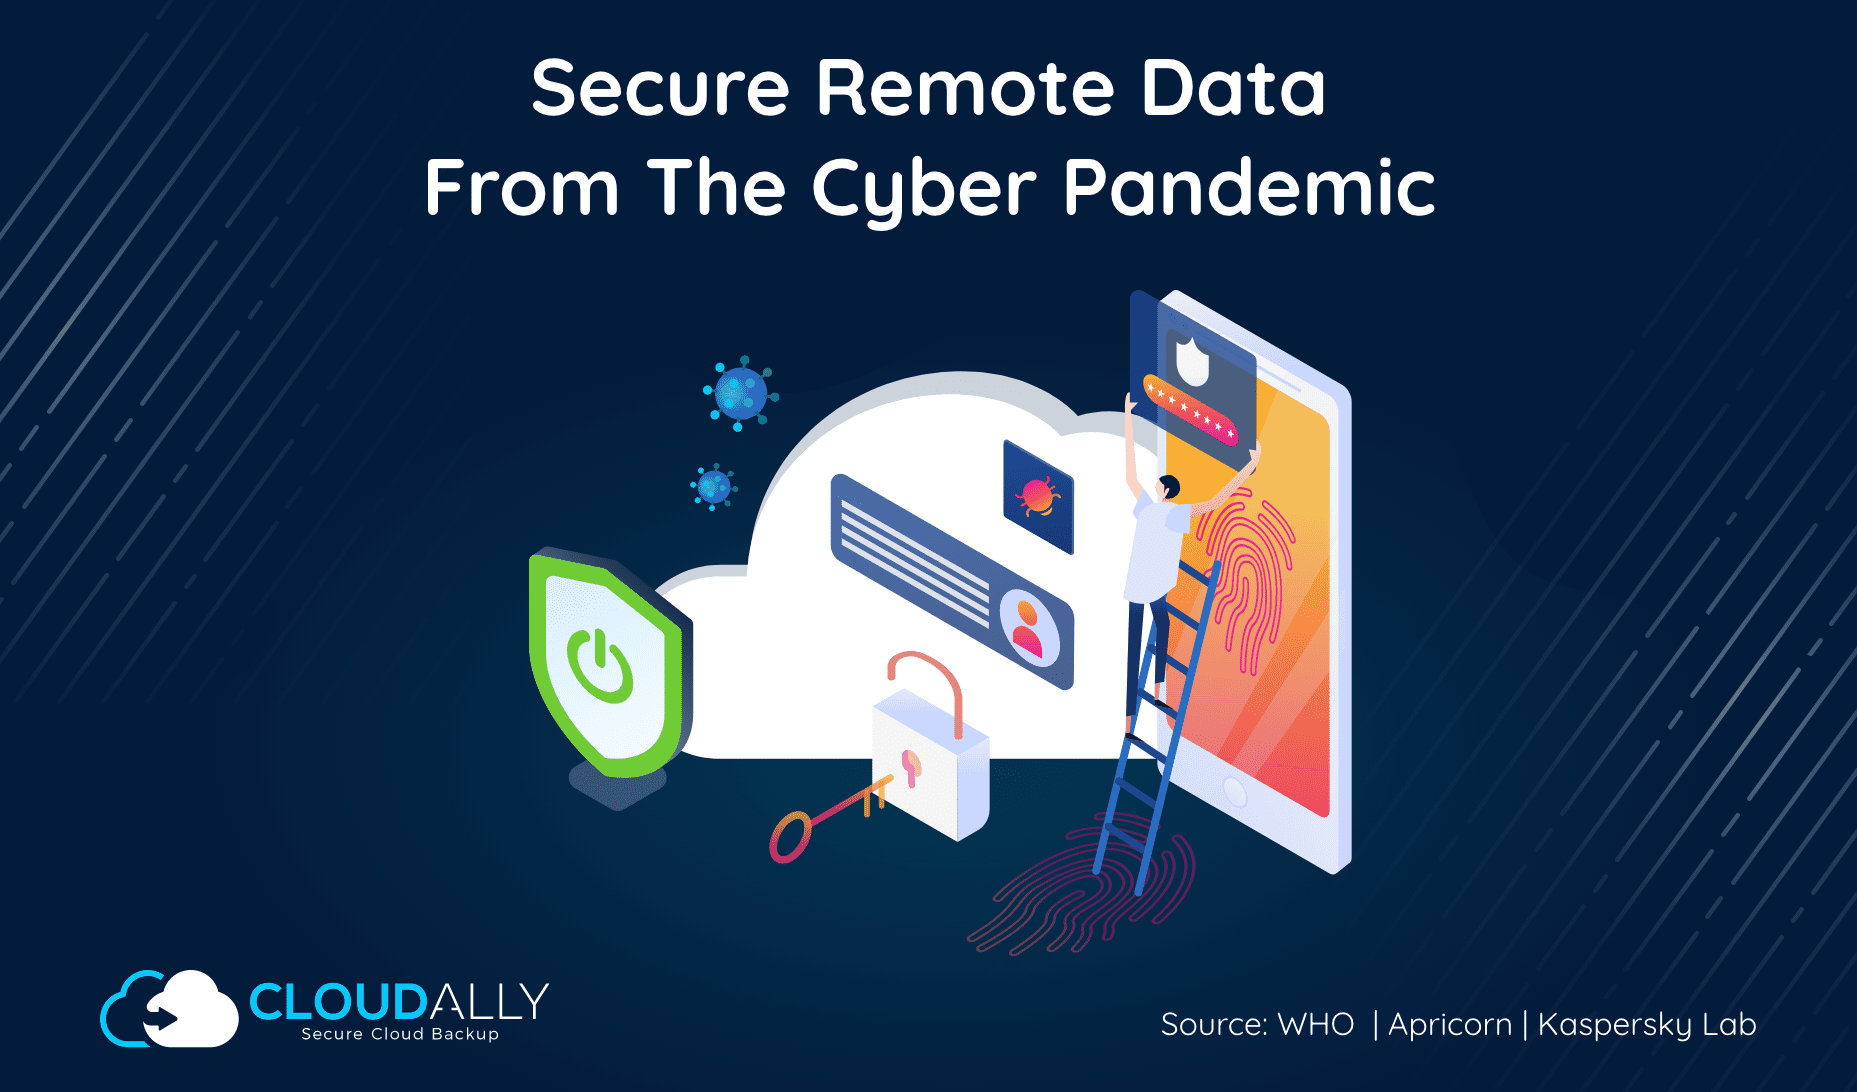 Remote Data Cyber Pandemic